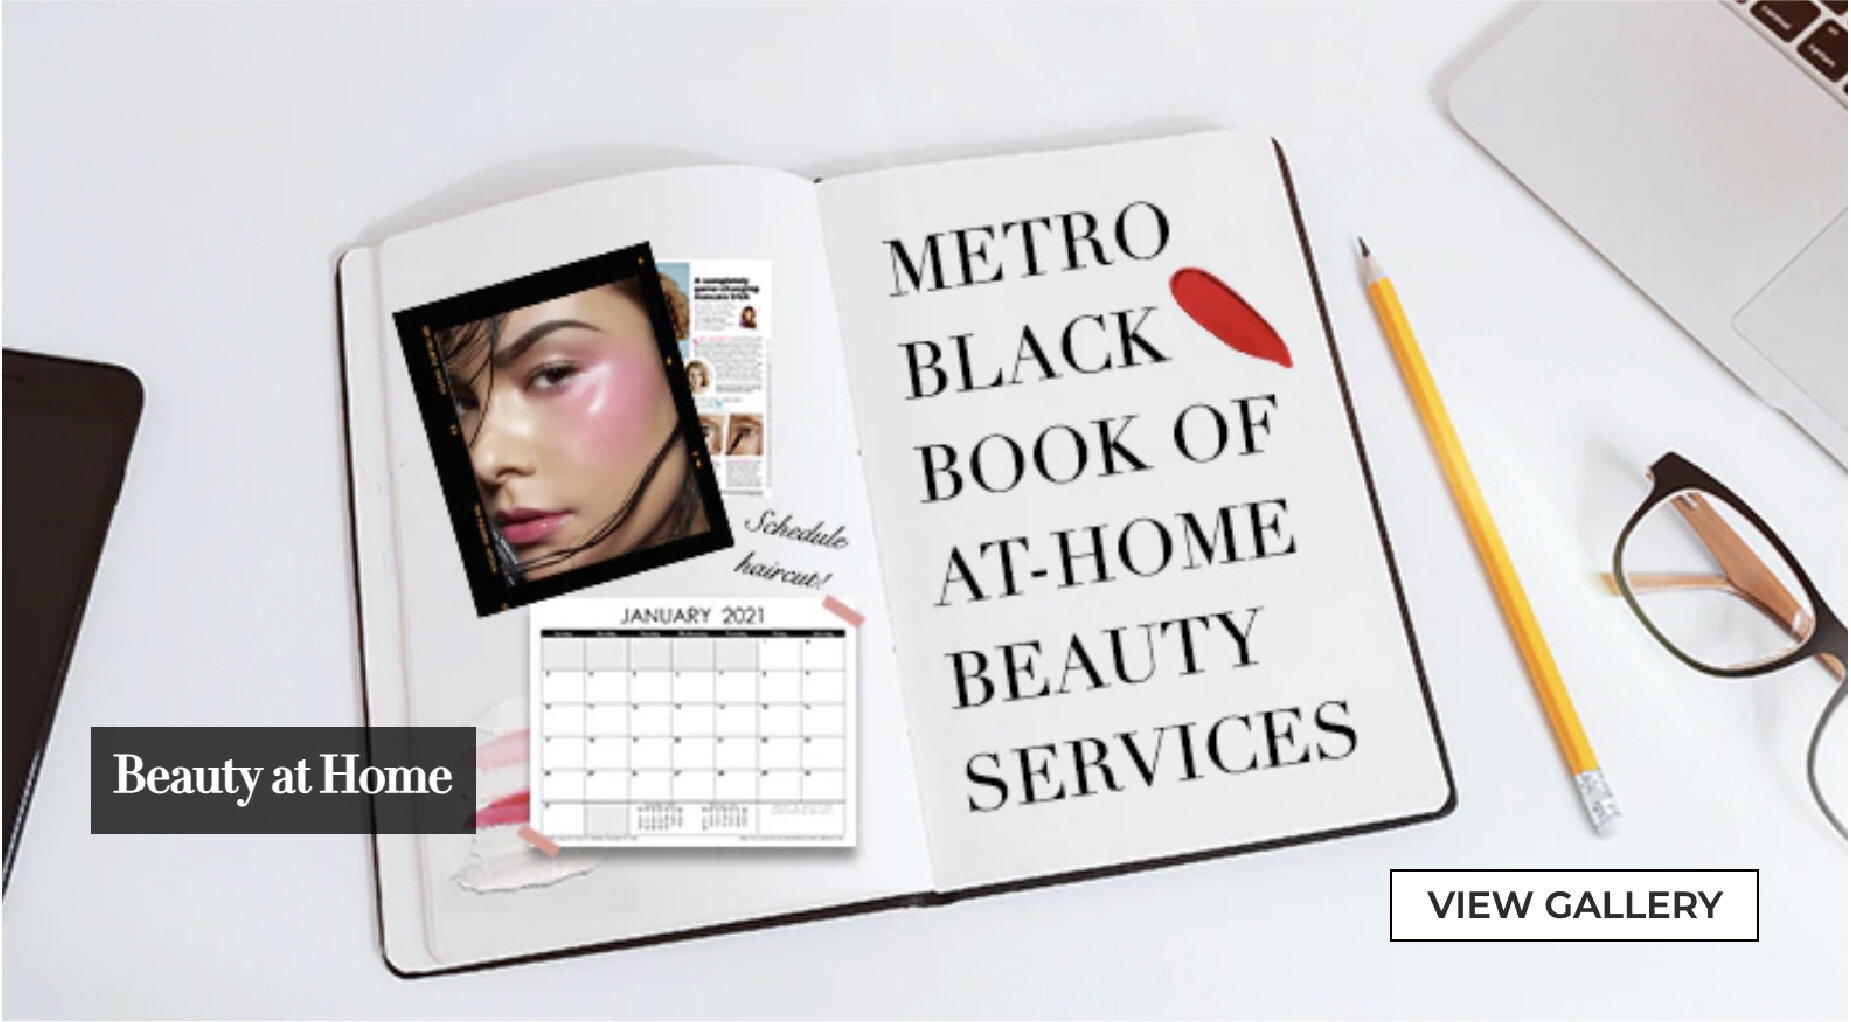 The Metro Black Book Of At-Home Beauty Servicesby Kate Paras - Santiago of Metro.Style | January 24, 2021